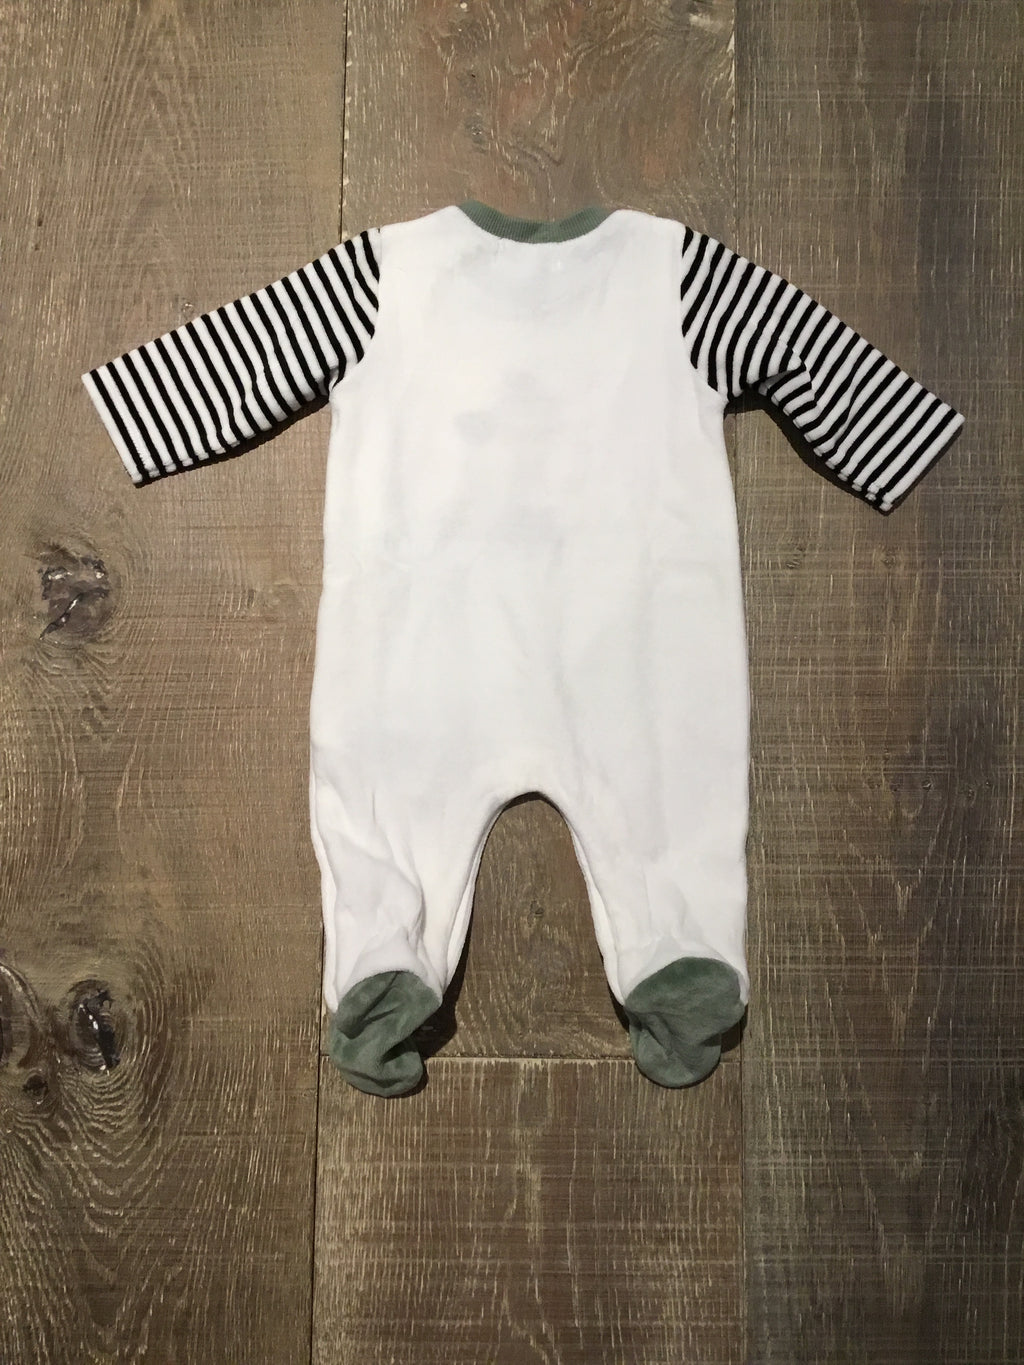 Ivory & Olive Puppy Pjs